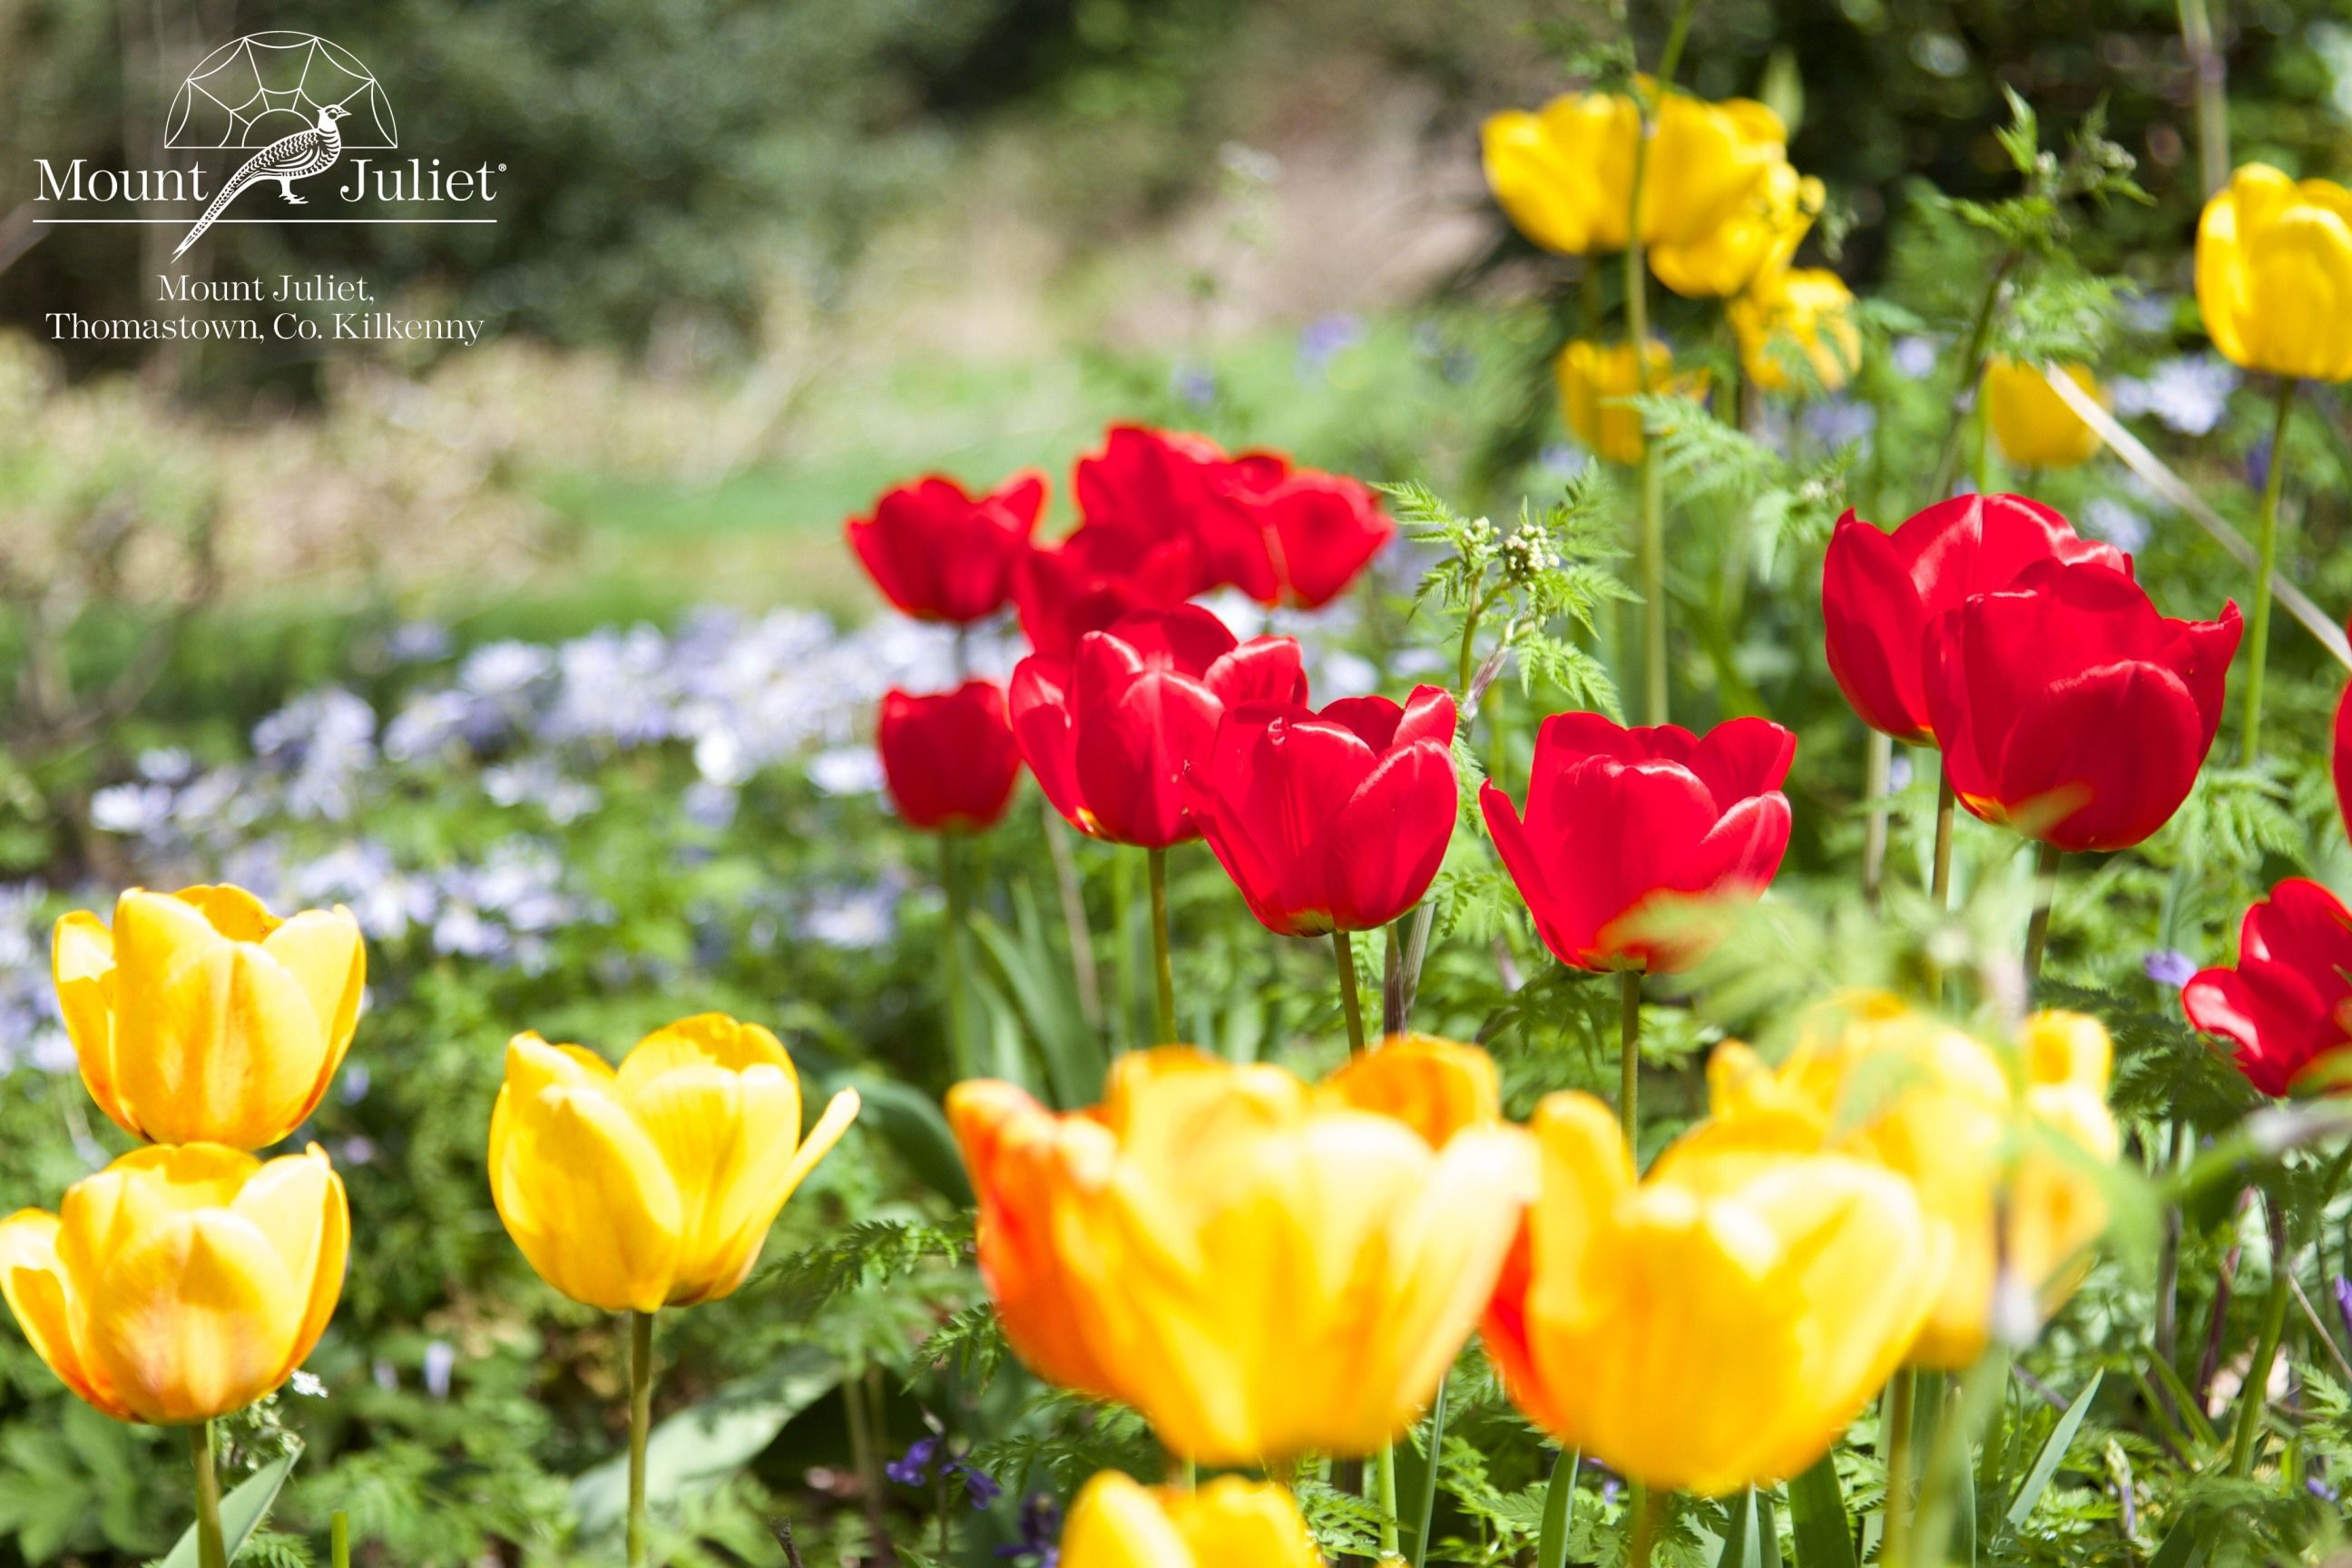 The tulips are currently in full bloom at Mount Juliet. http://www.mountjuliet.ie